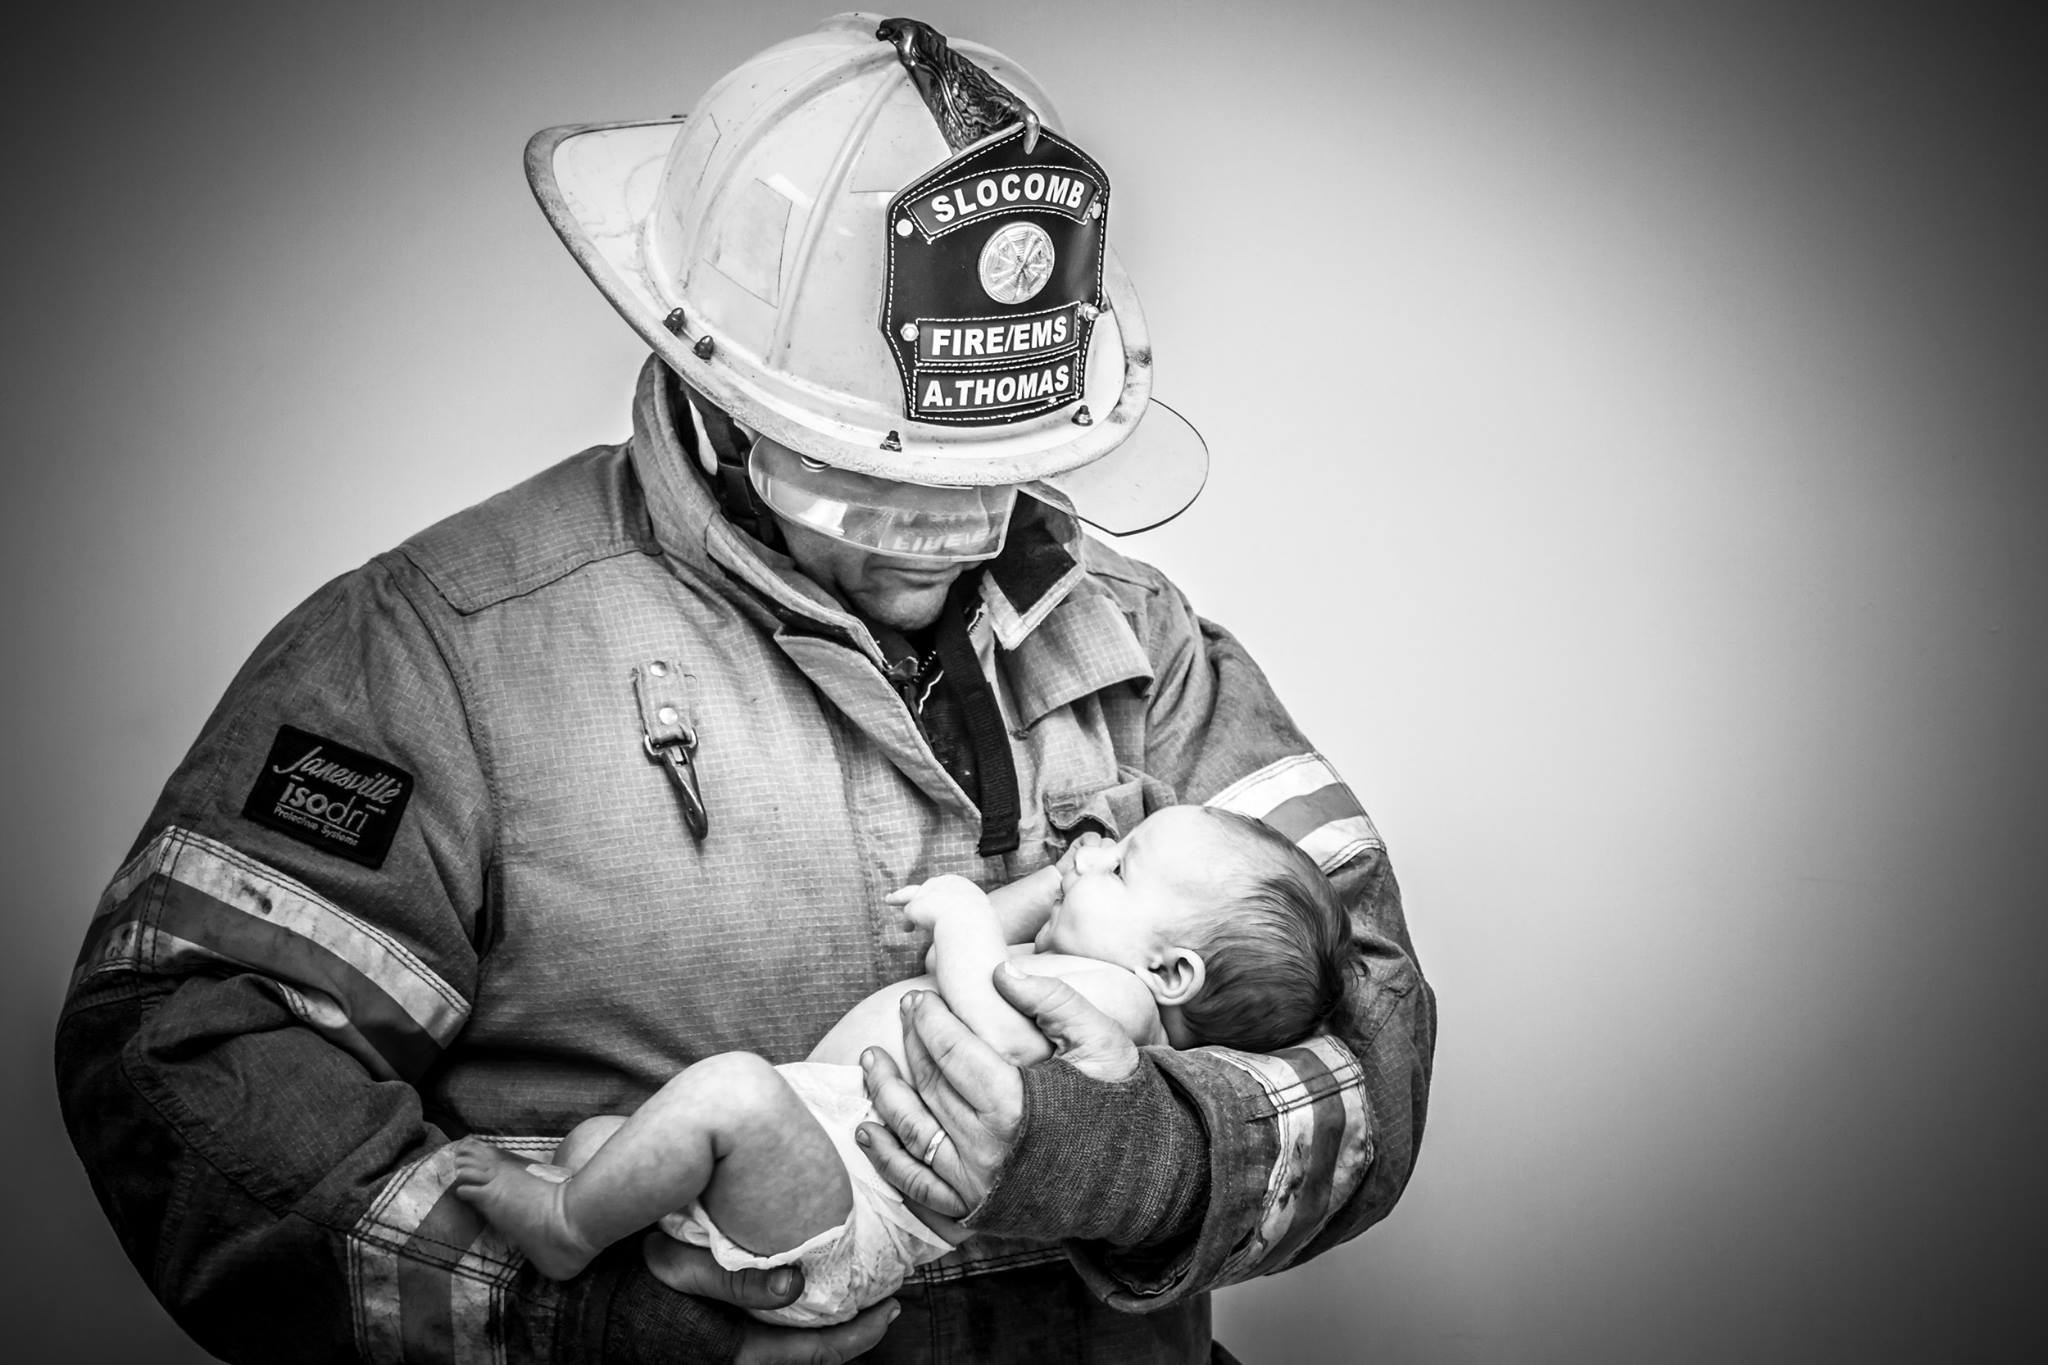 fireman.jpg - undefined by Craig Smith